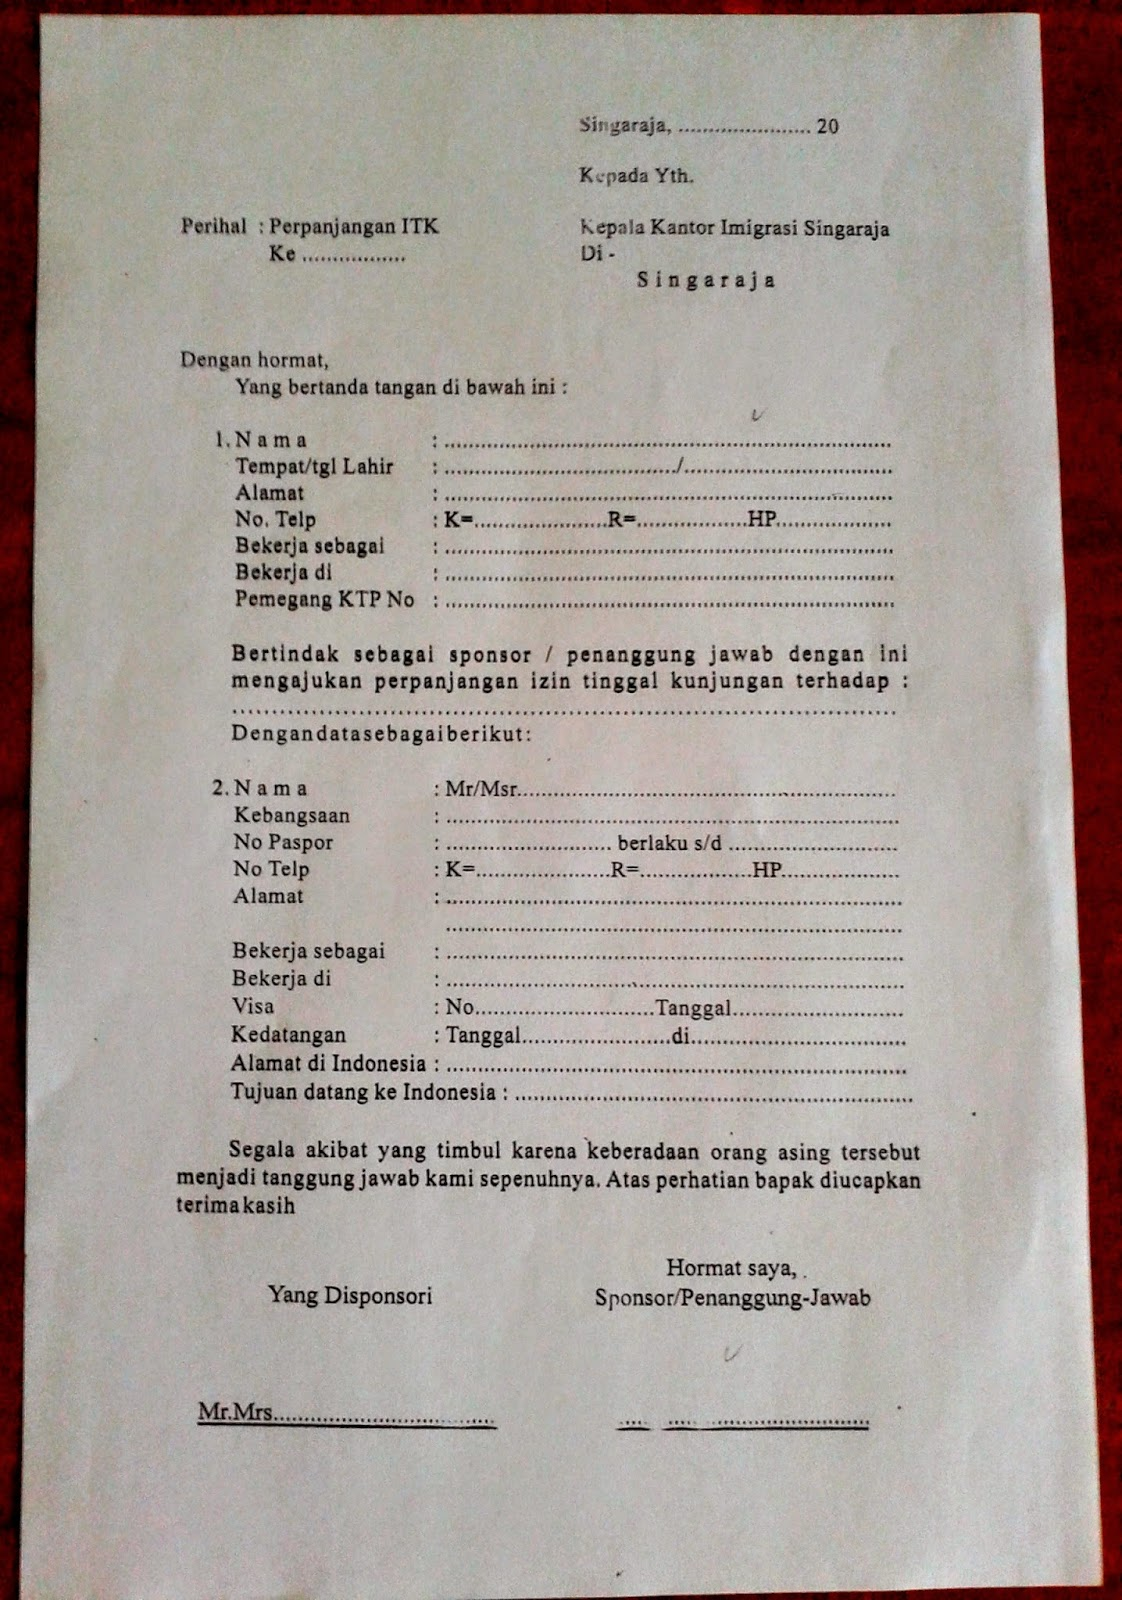 Sponsor letter social visa indonesia 28 images visa practical sponsor letter social visa indonesia the impermanents how to renew the social budaya in bali spiritdancerdesigns Image collections